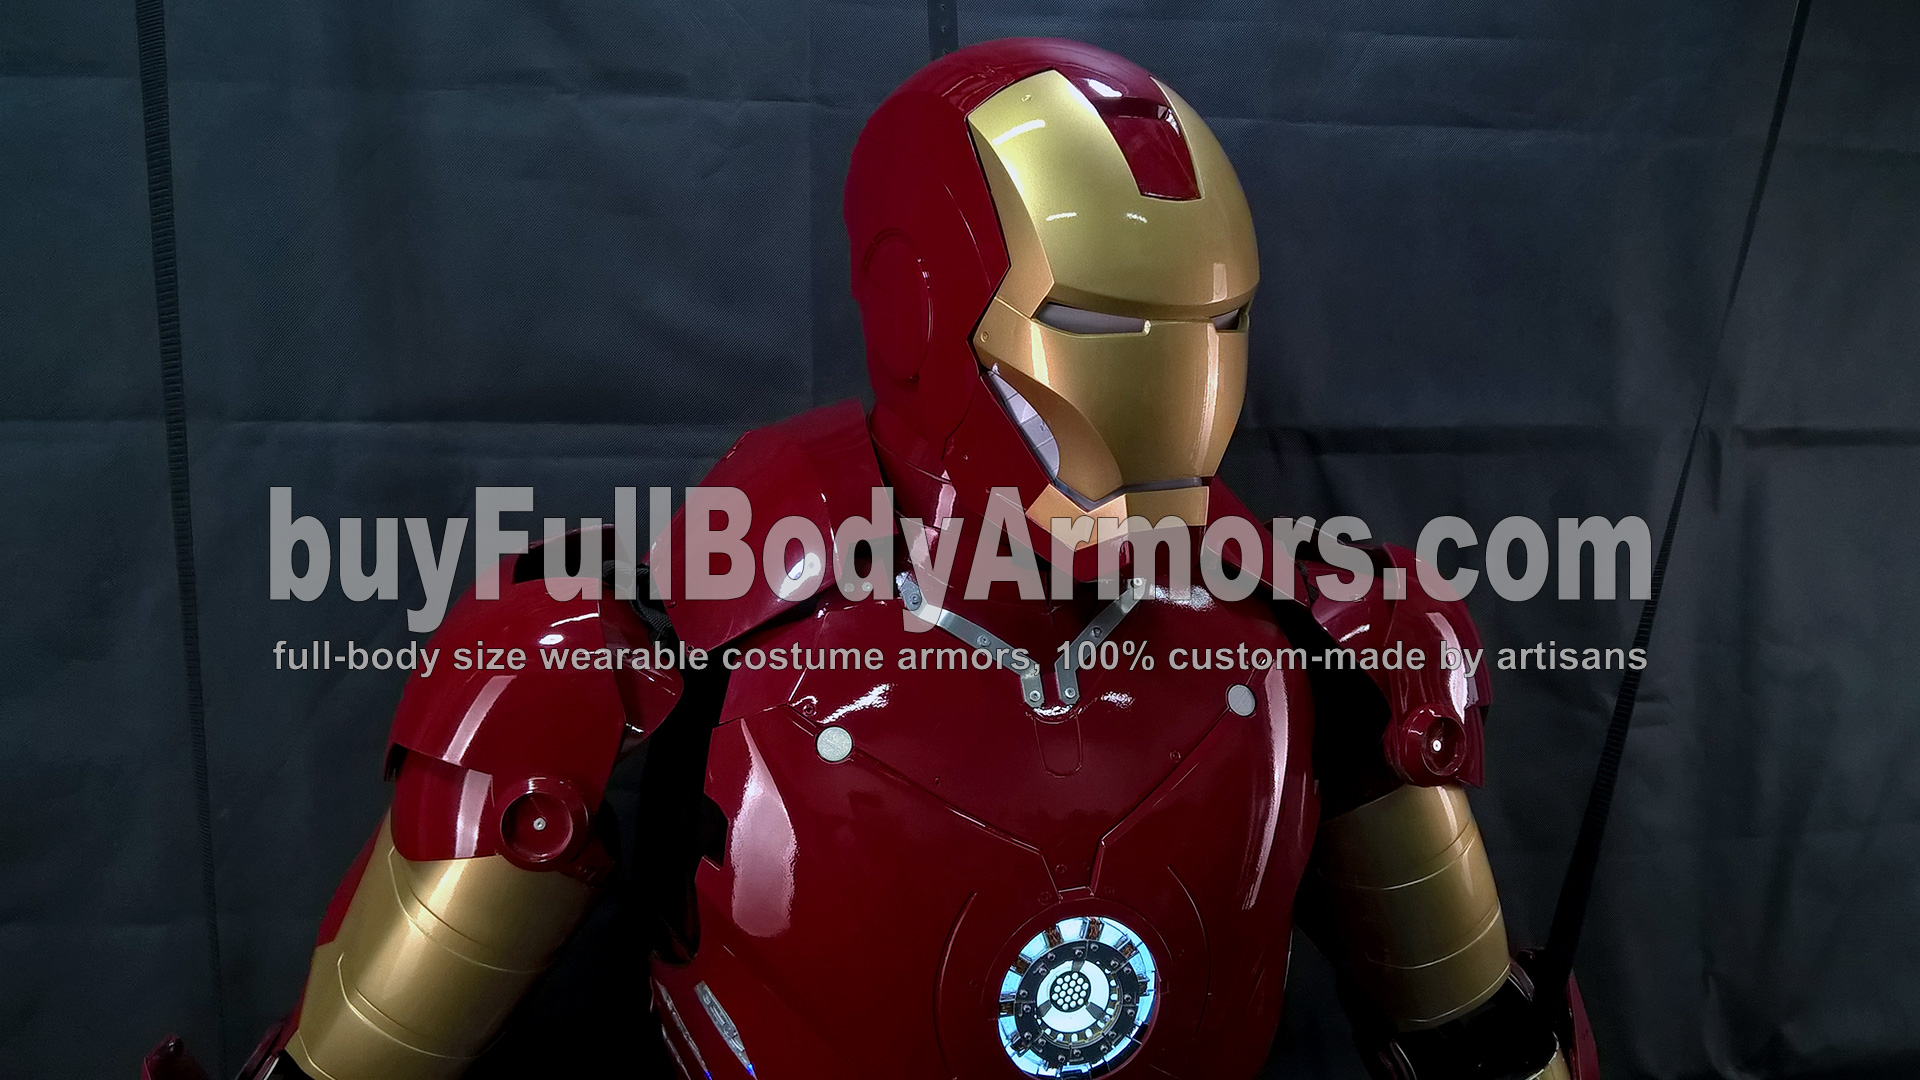 The Wearable Iron Man Suit Mark 3 III Armor Costume - Top Half Prototype 2